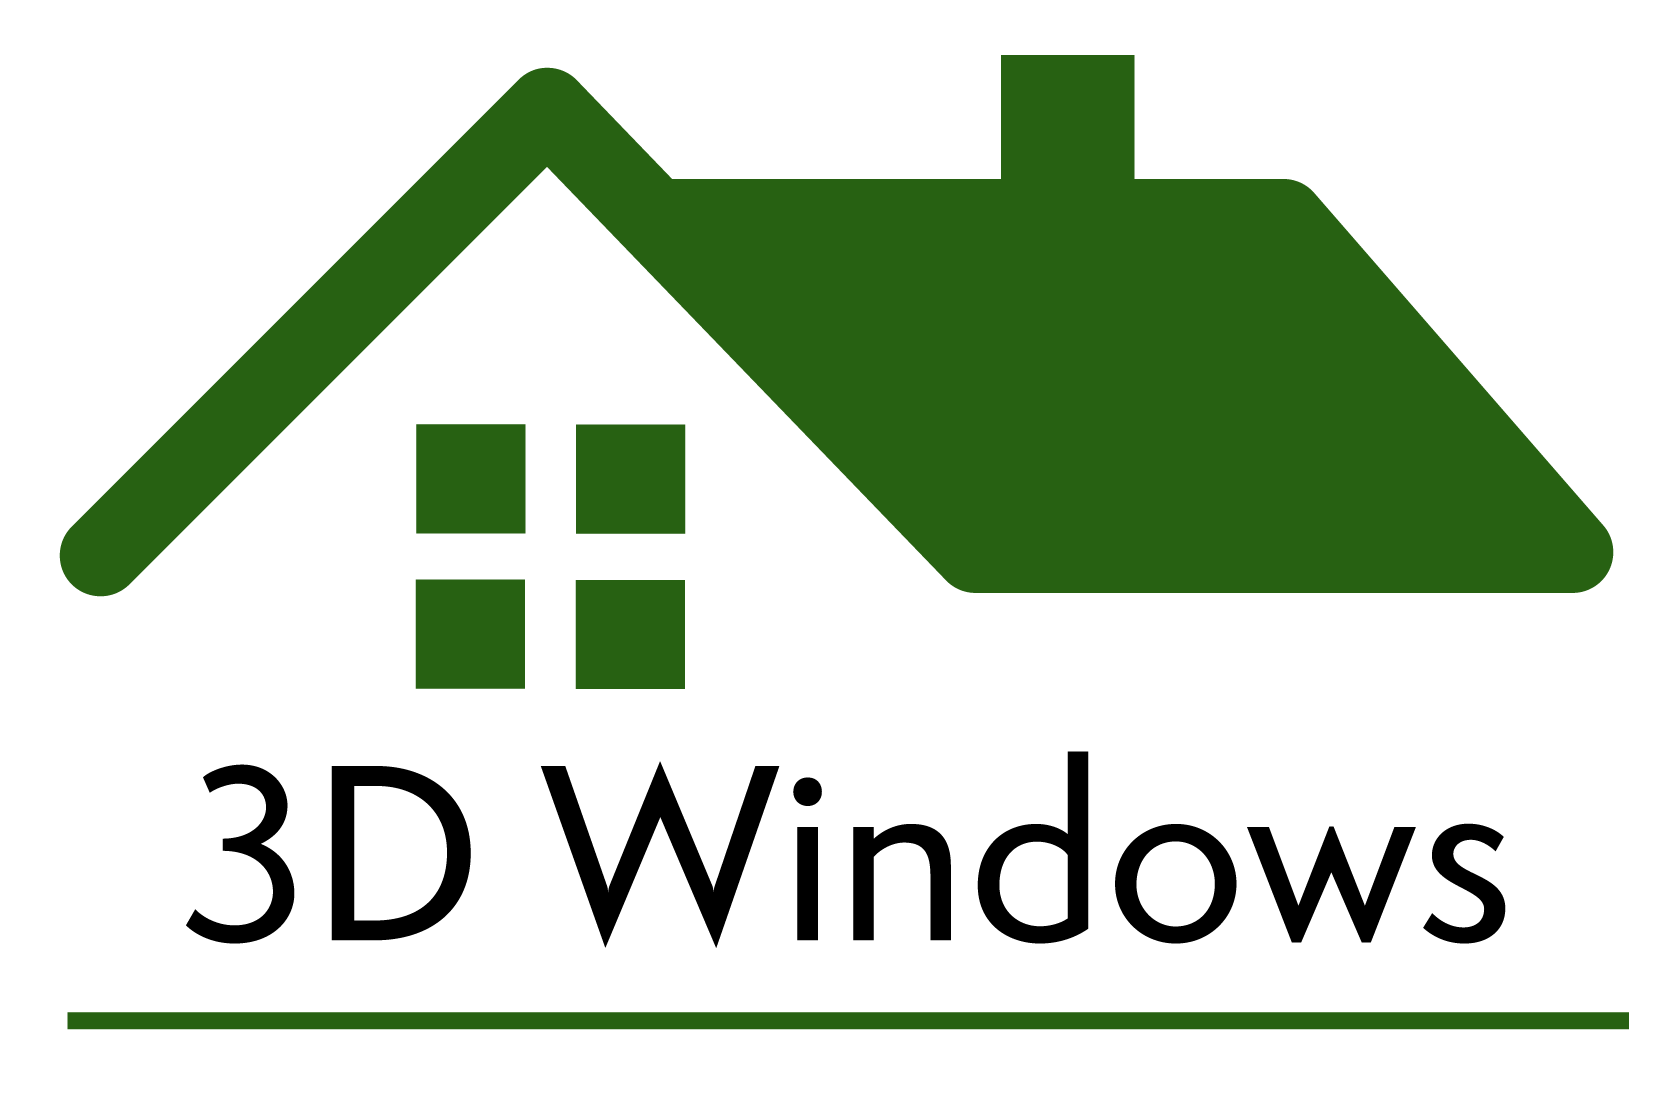 3D Windows